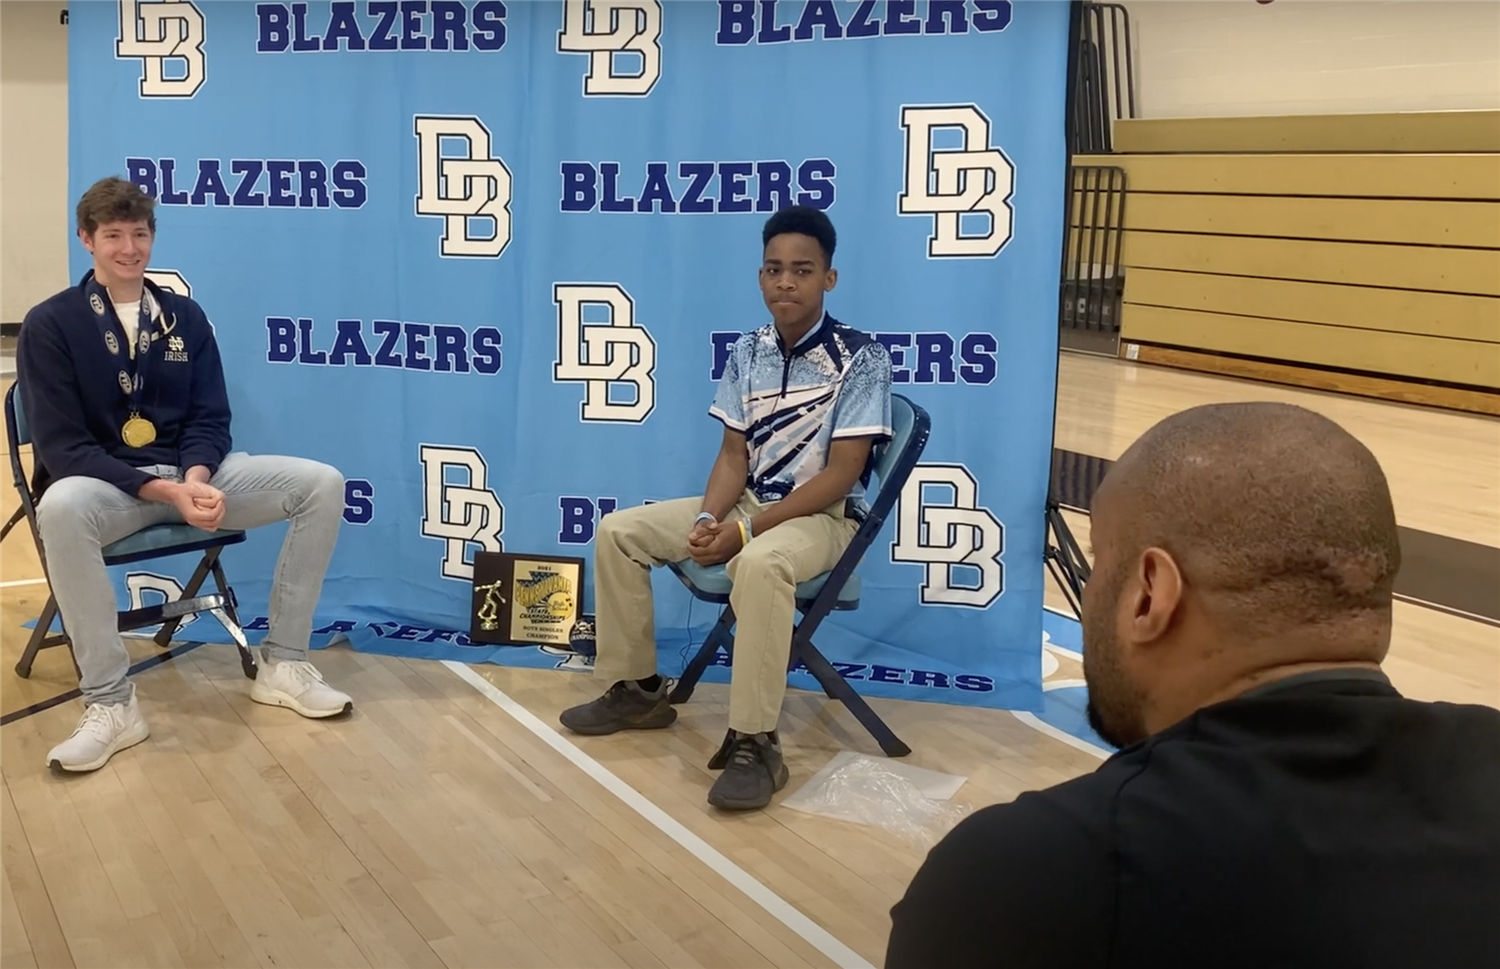 Mr. Flowers sits down with Chris Guiliano and Alex Horton to discuss their recent PA Gold Medals.